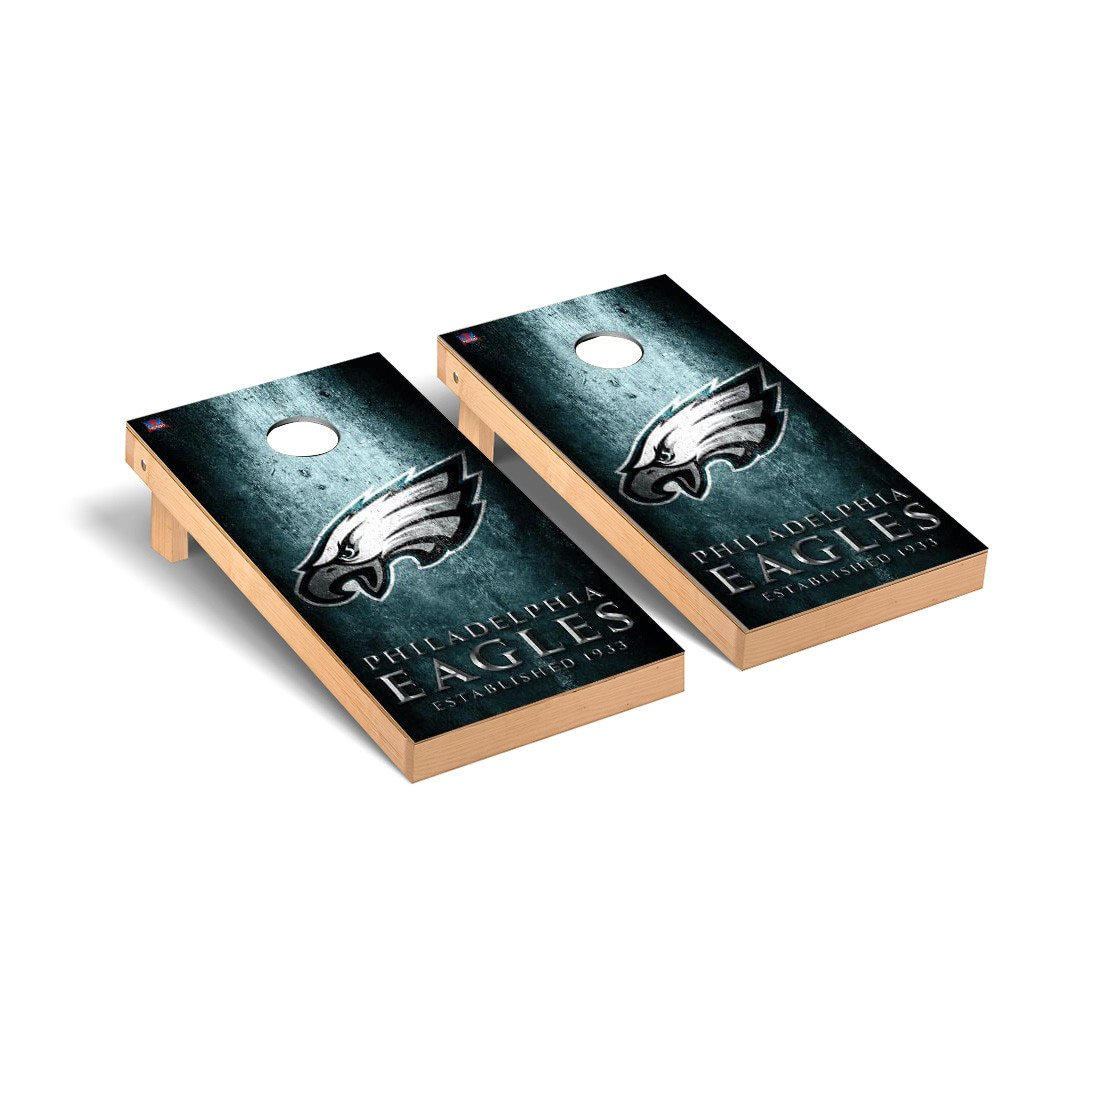 NFL Philadelphia Eagles Museum Version Football Corn hole Game Set, One Size by Victory Tailgate (Image #1)